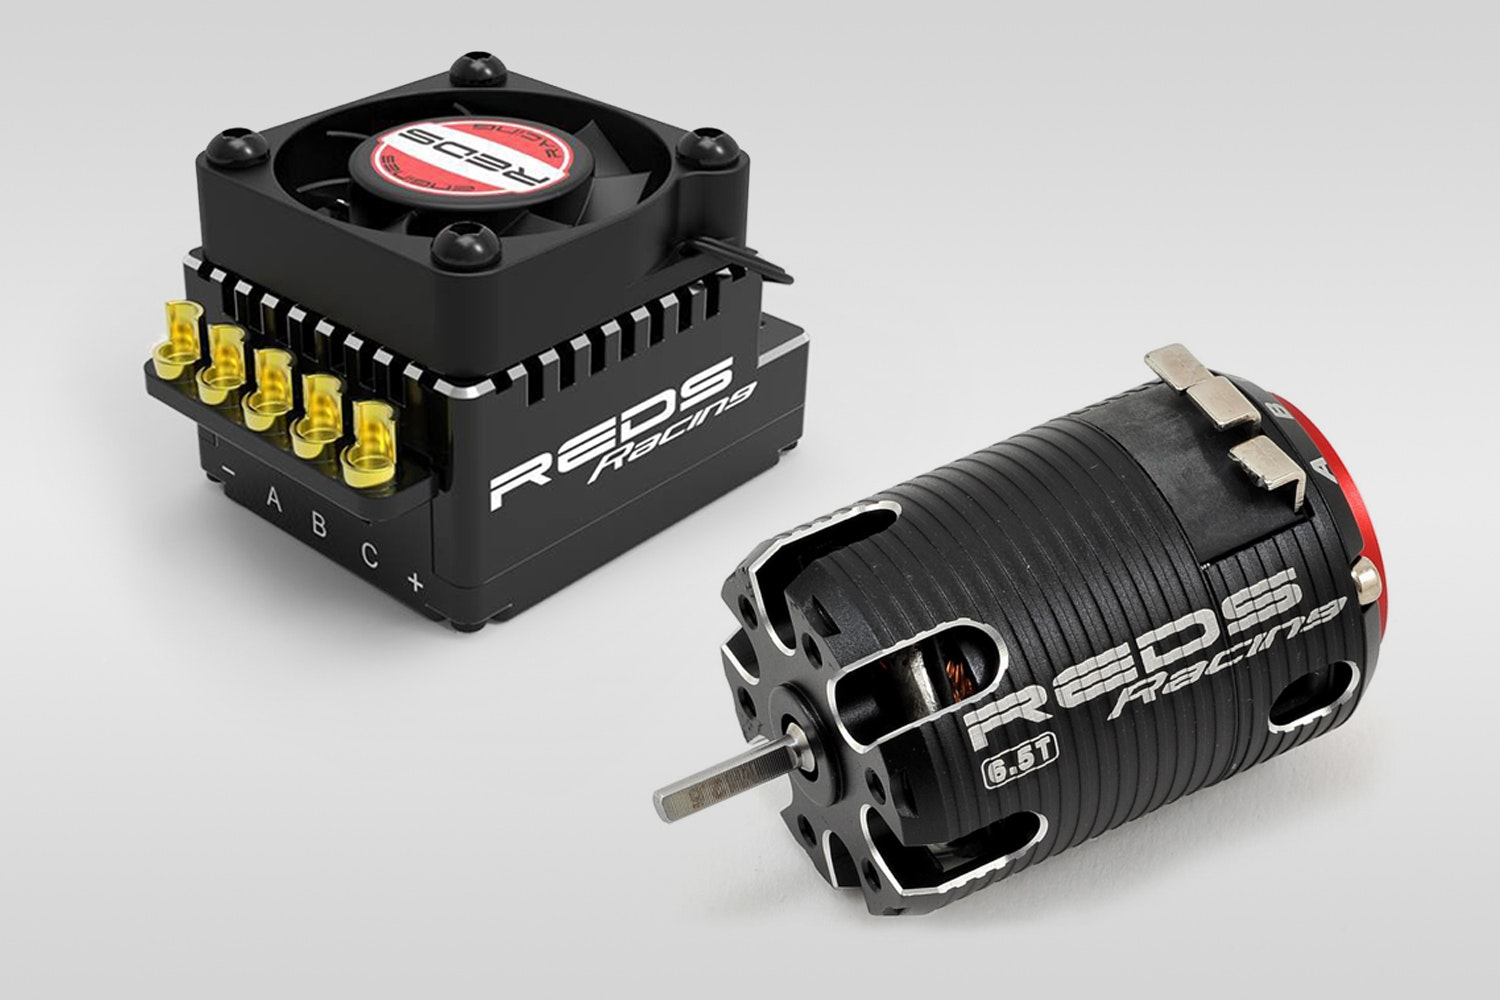 REDS TX & VX Pro Racing Brushless Motor Combo